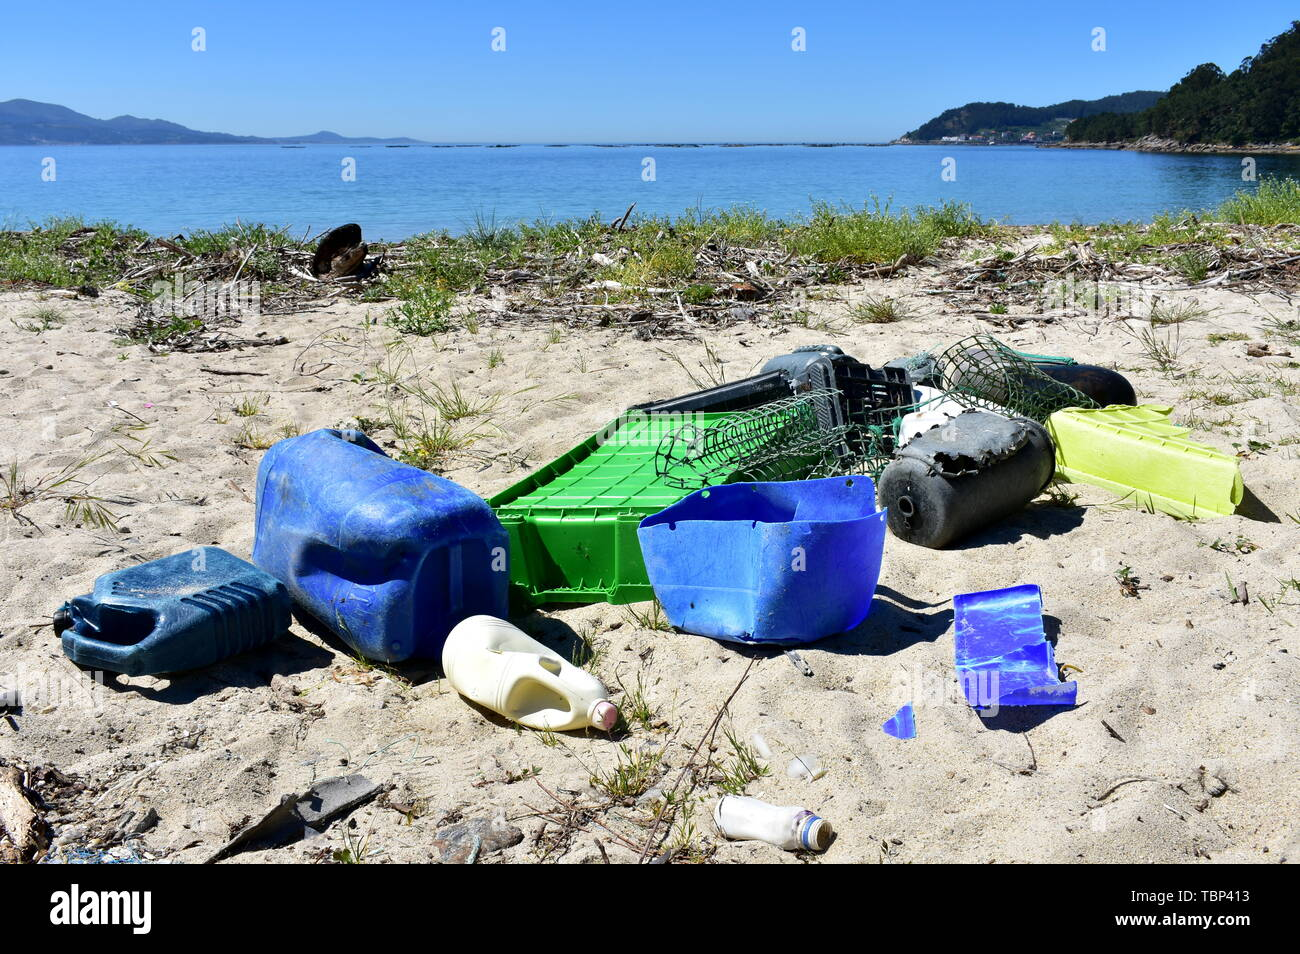 Dirty beach with plastic pollution. Galicia, Spain. - Stock Image